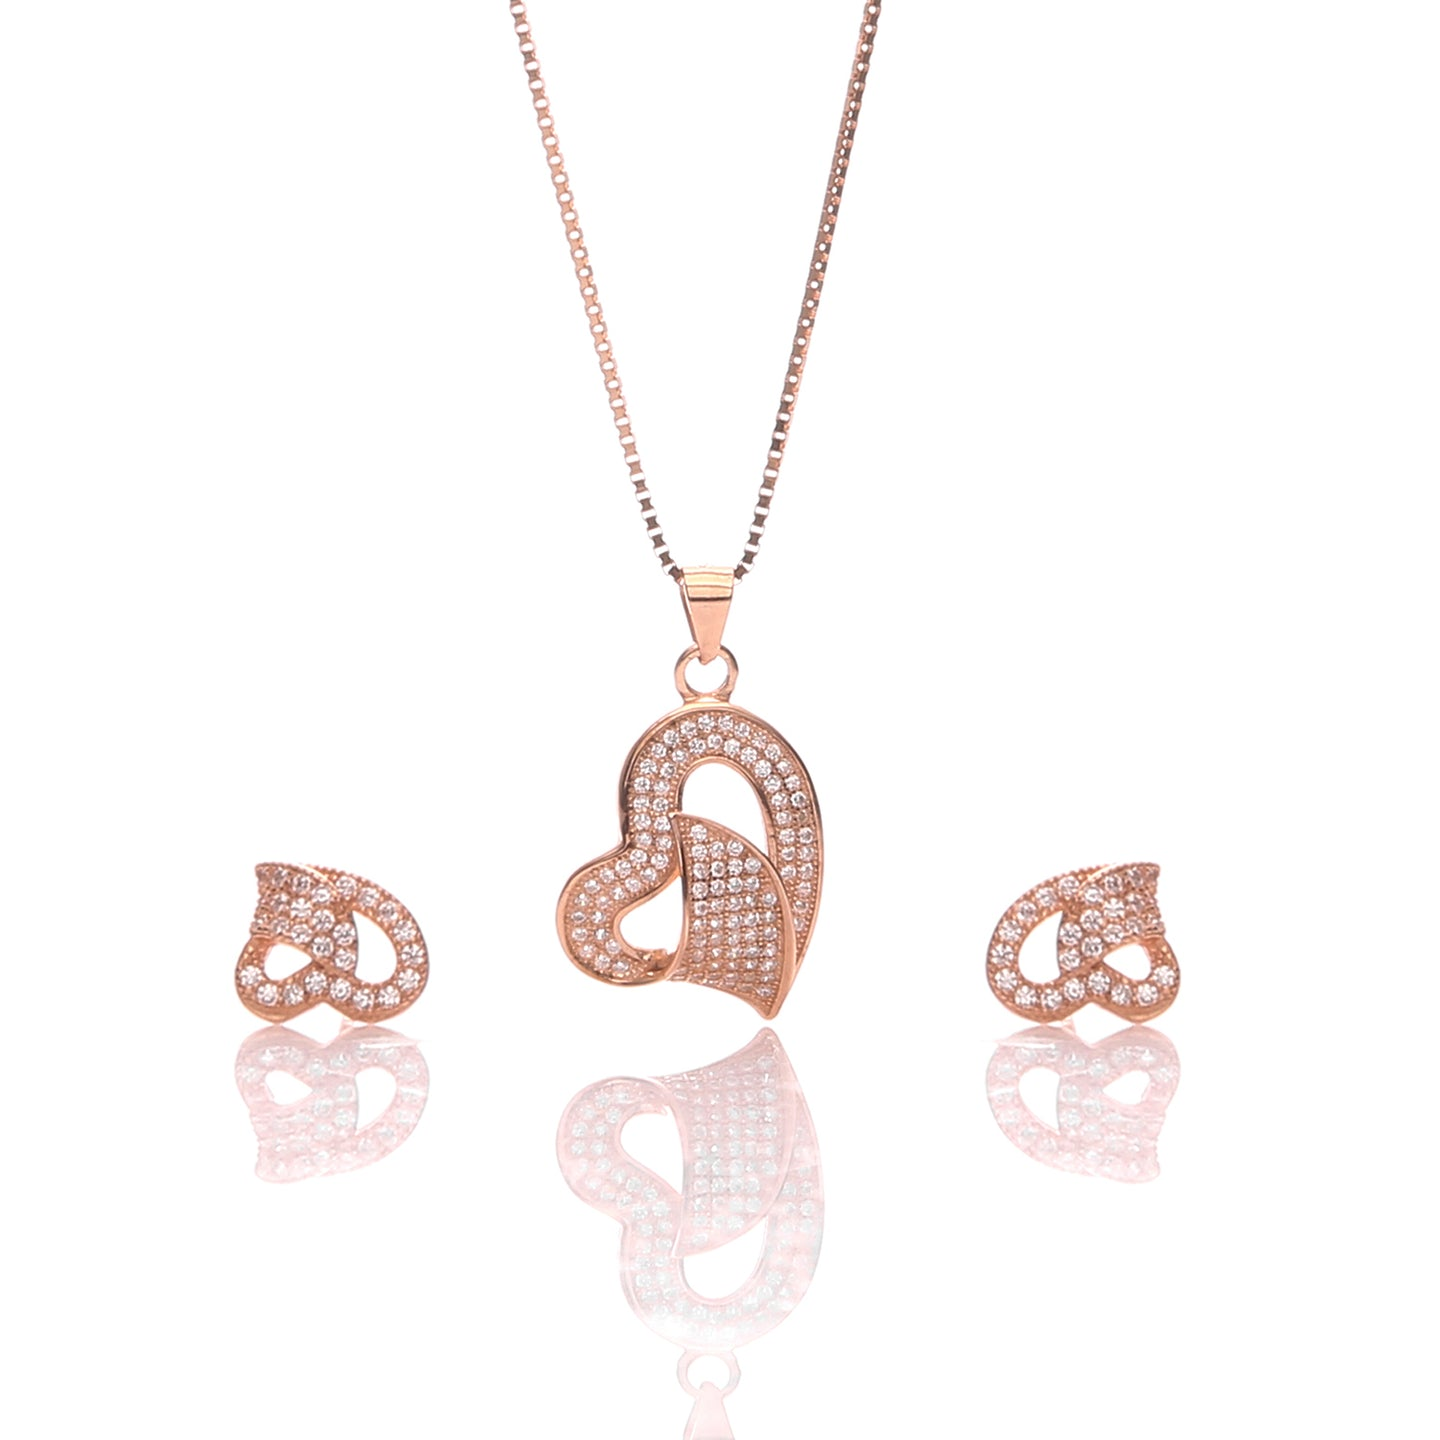 Classic One Sided Bent Heart Shaped Pendant Necklace and Earrings Set - ARJW1014RG - ARCADIO LIFESTYLE